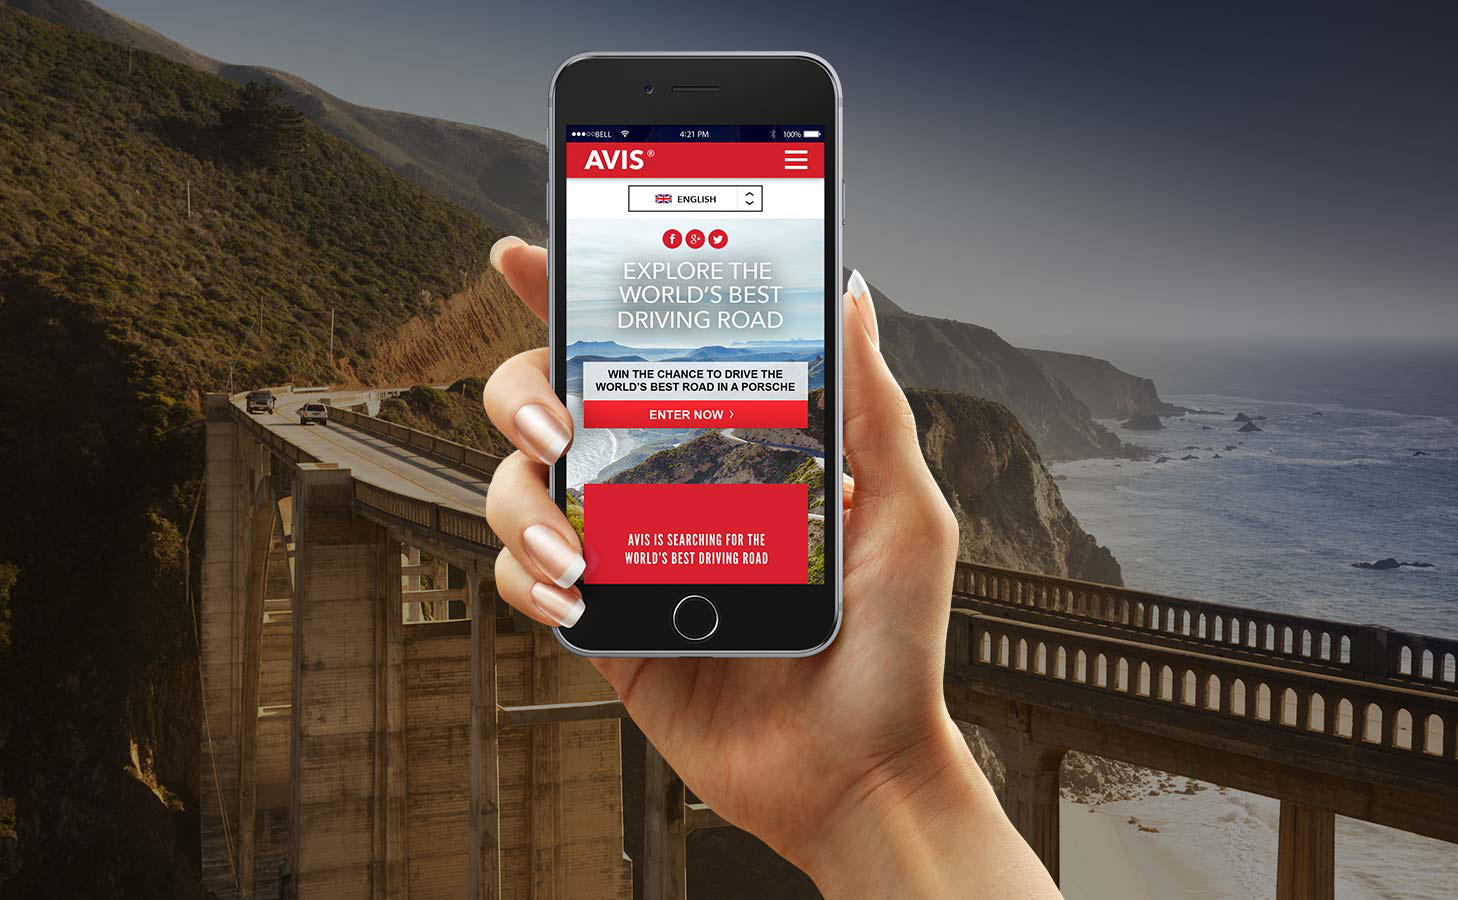 AVIS: Their most successful integrated campaign